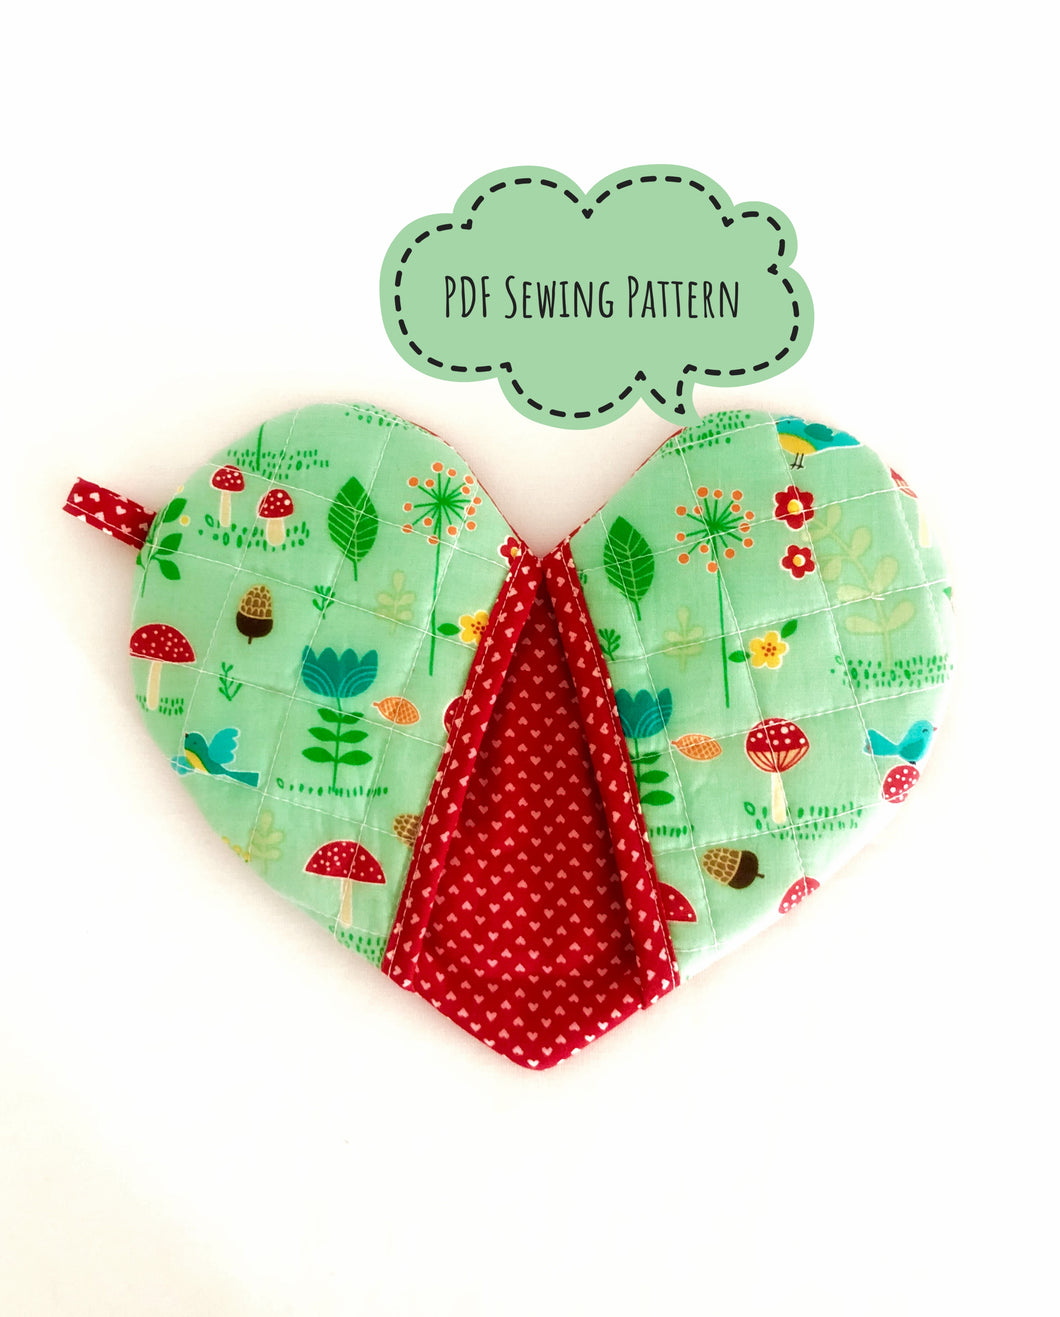 Heart Shaped Oven Mitt Sewing Pattern; Heart Shaped Potholders PDF Sewing Pattern